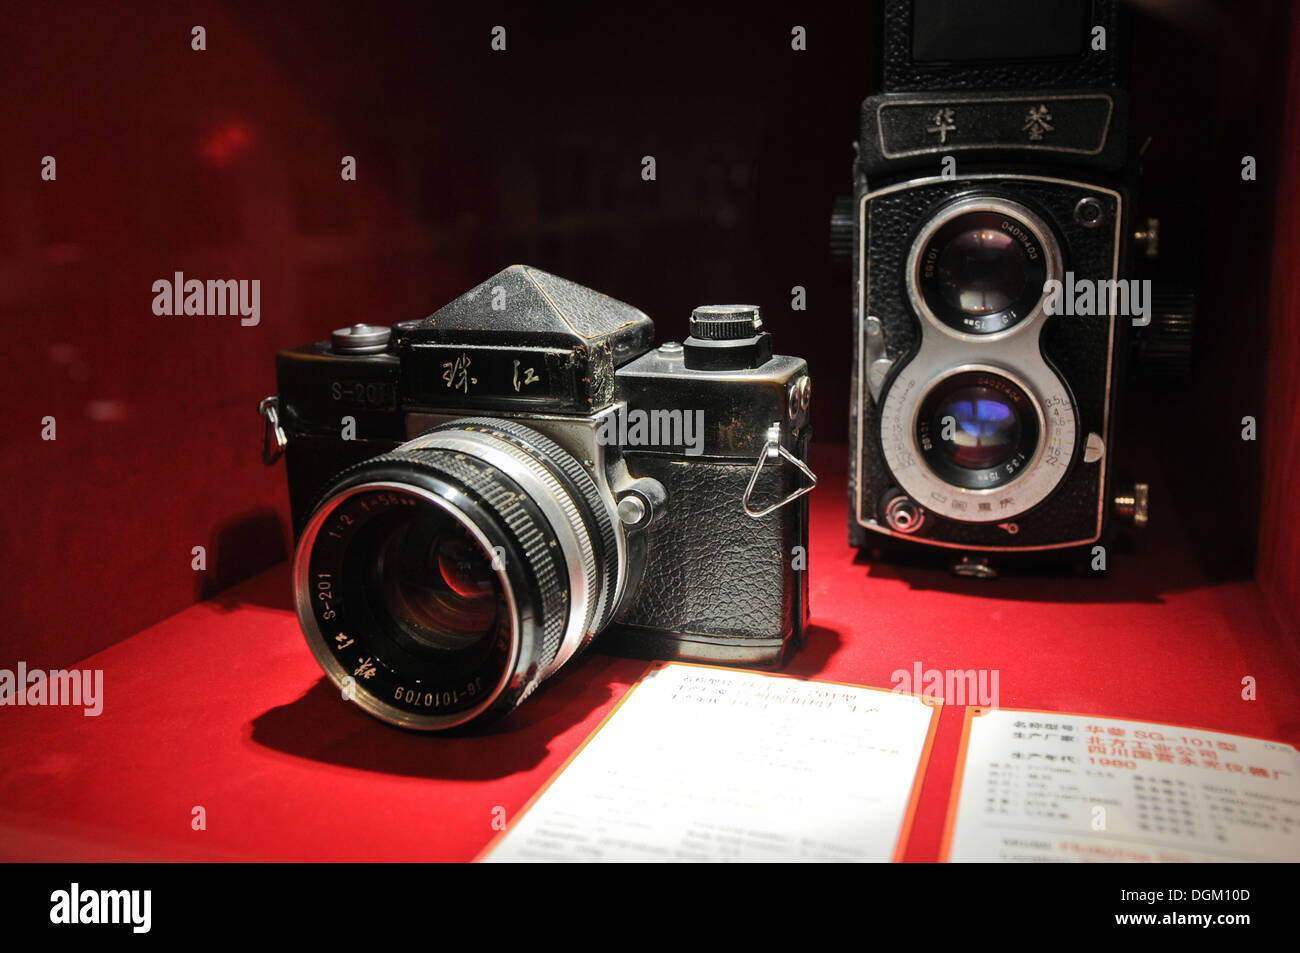 JHE JIANG or Pearl River S-201 SLR camera (left) in Museum of Old Camera Manufacturing in Shanghai, China - Stock Image